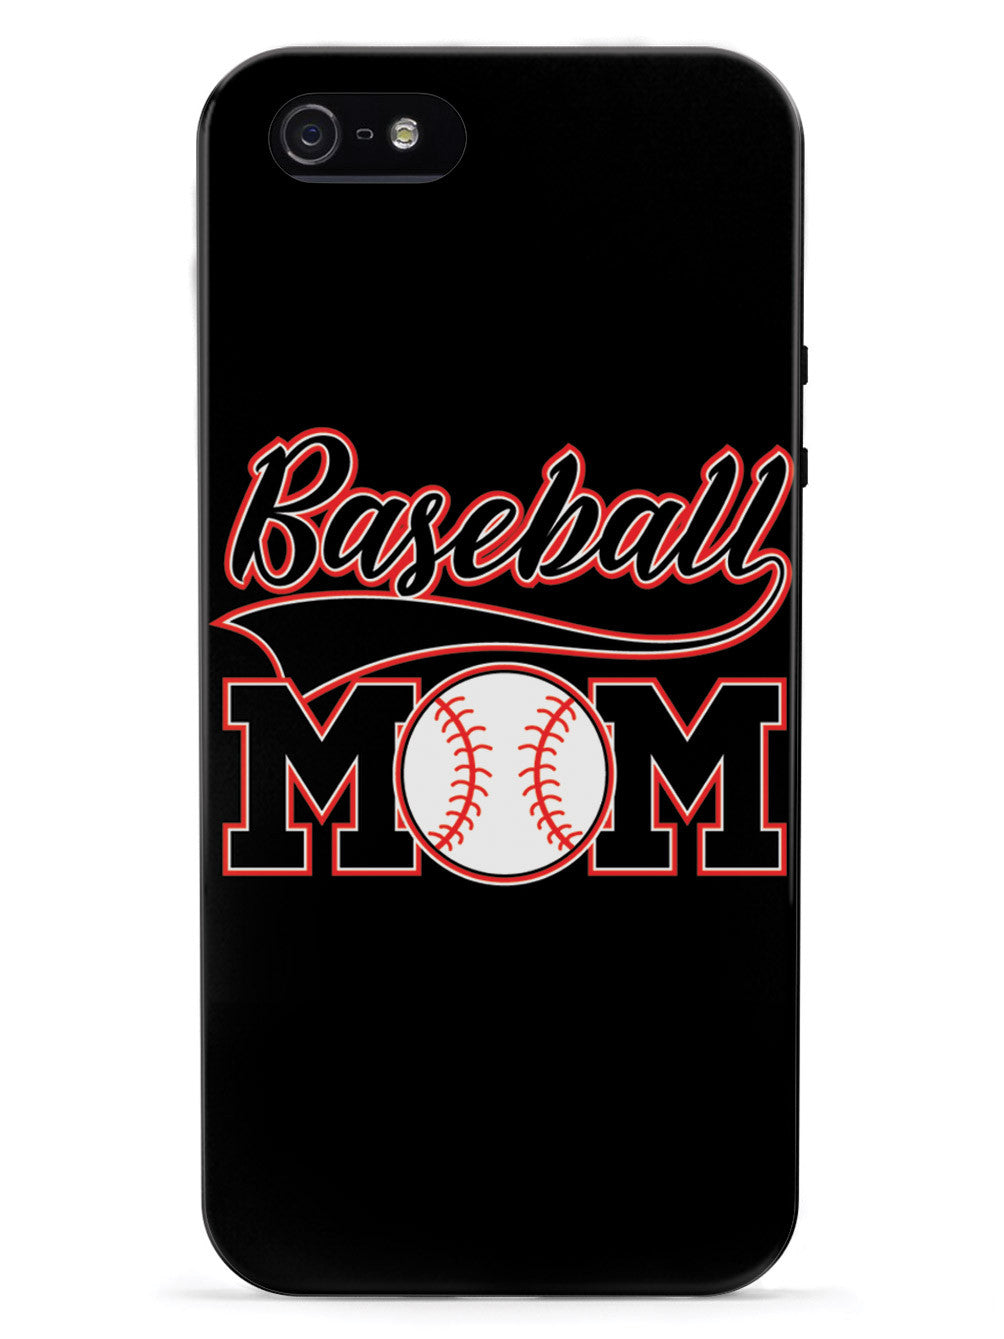 Baseball Mom - Black Case